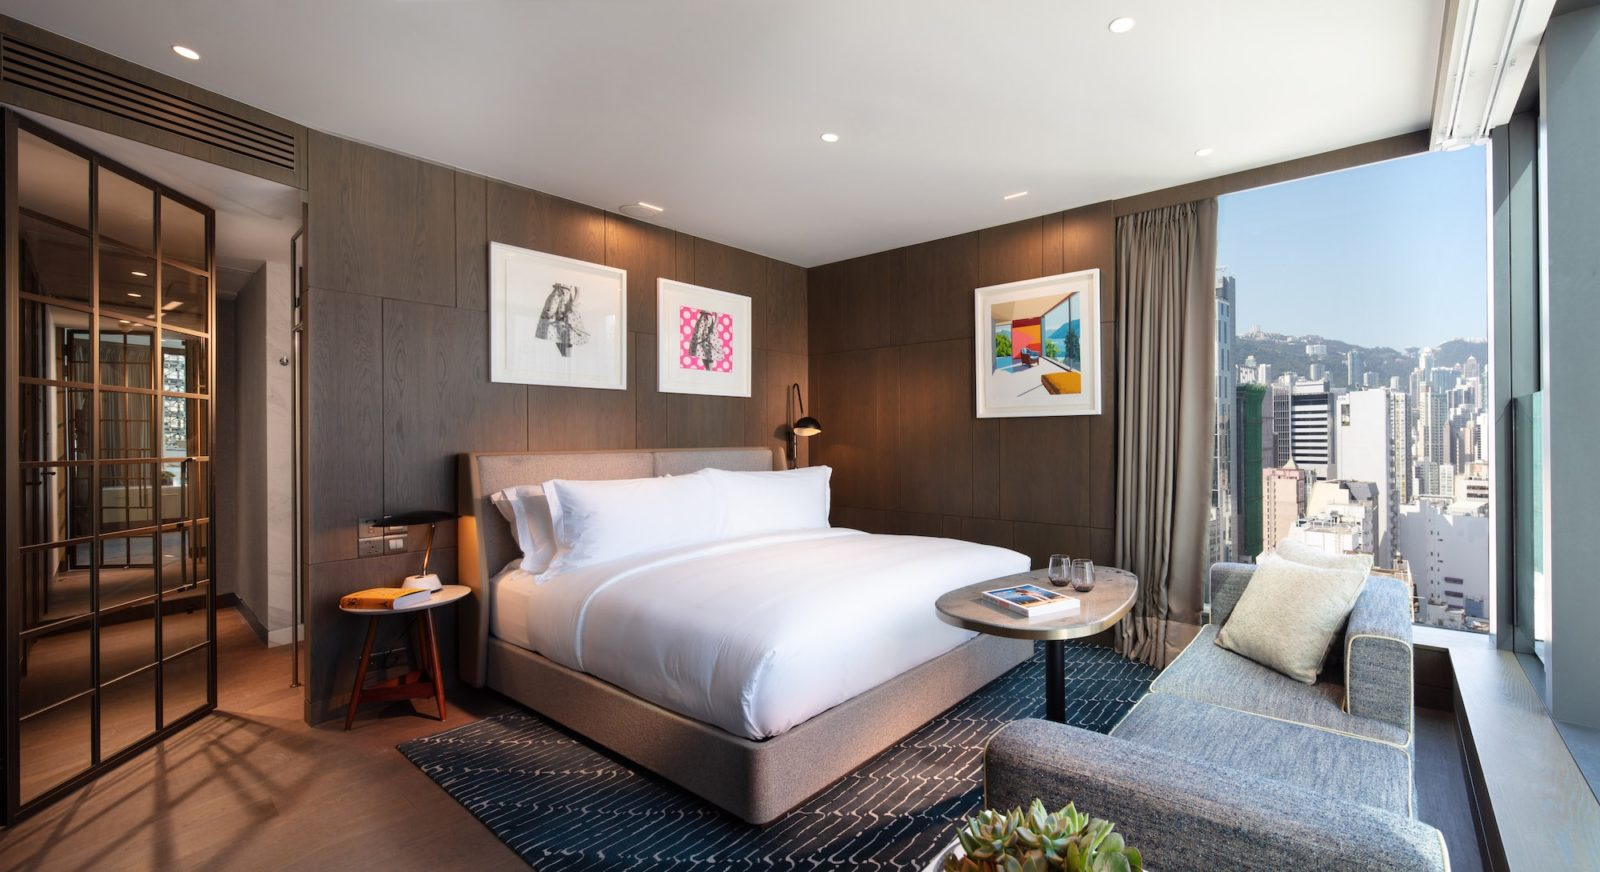 Out of Staycation Ideas? The Hari Hong Kong Will Open its Doors on December 12